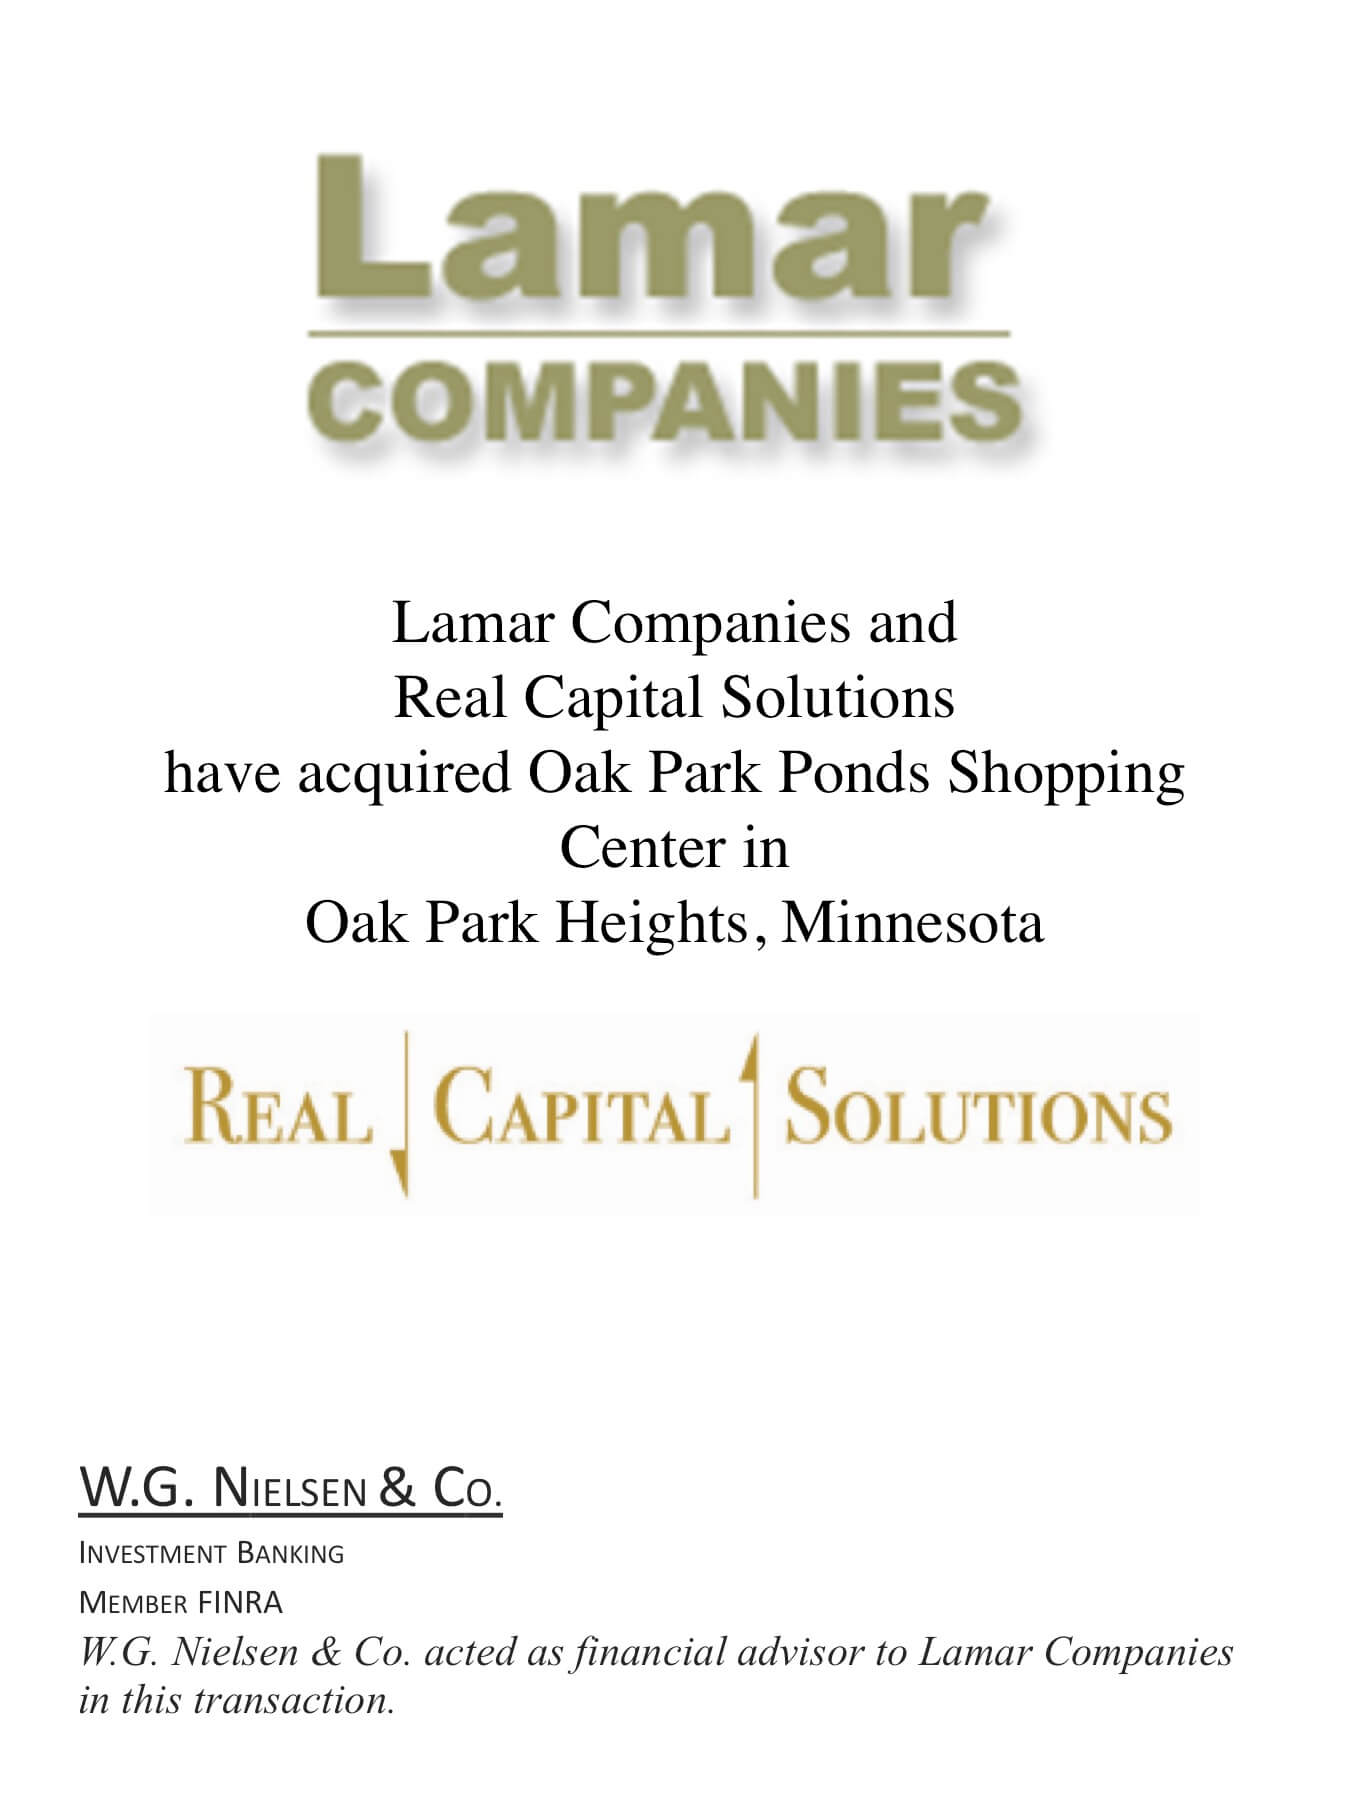 lamar companies 3 investment banking transaction